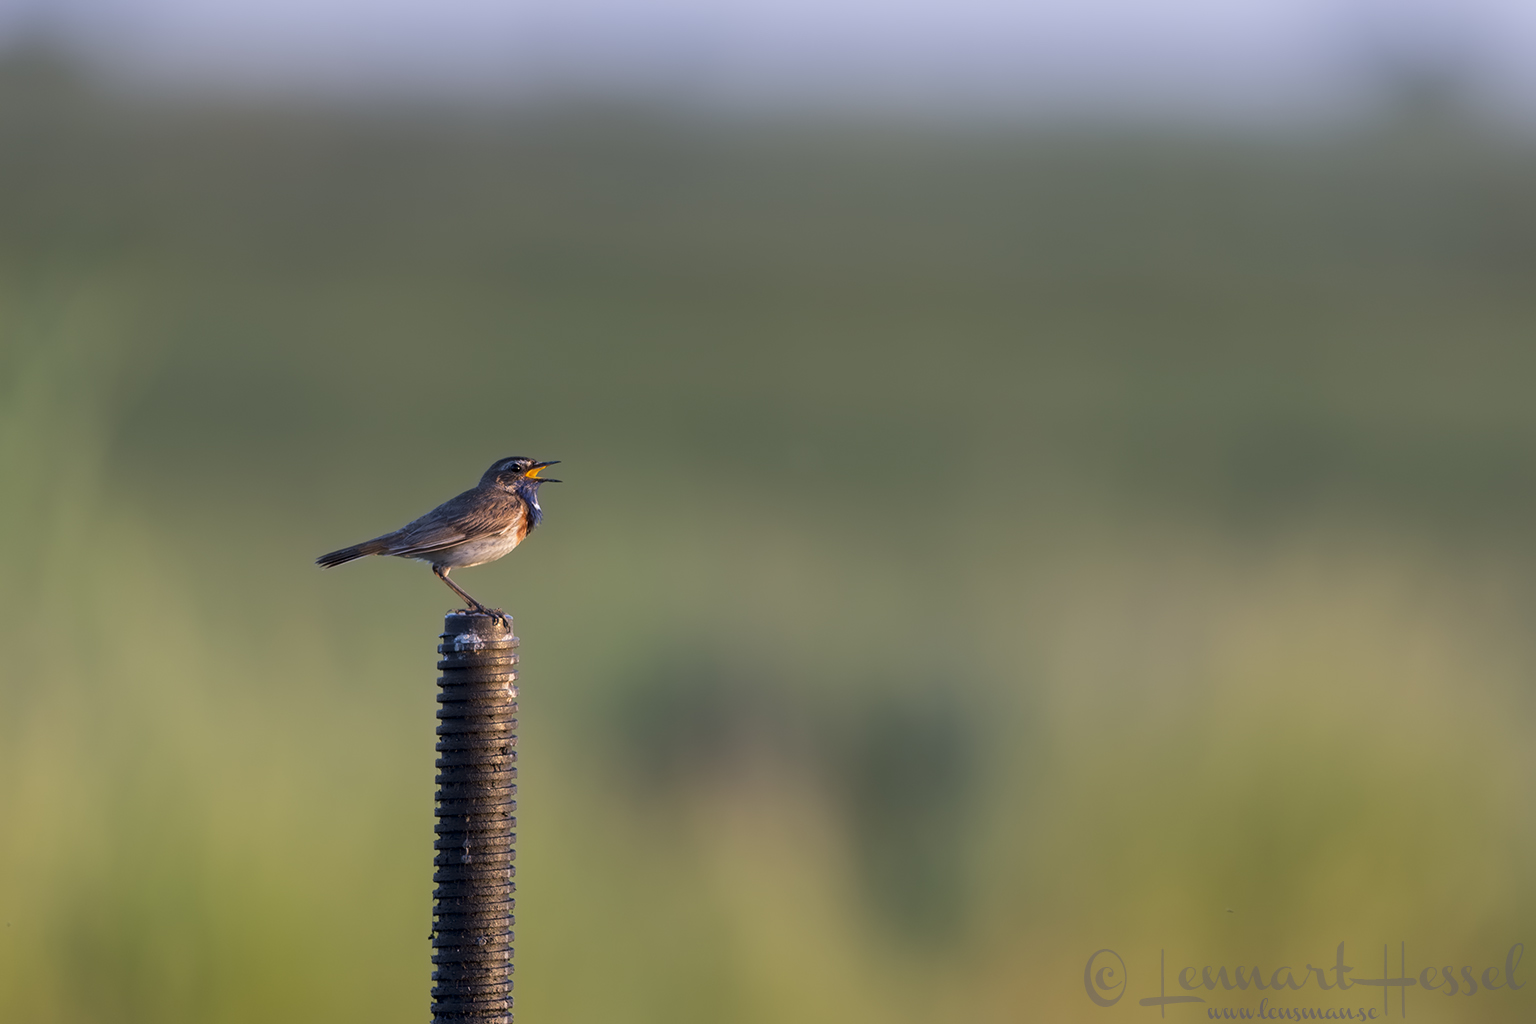 Bluethroat Hungary Bee-eater